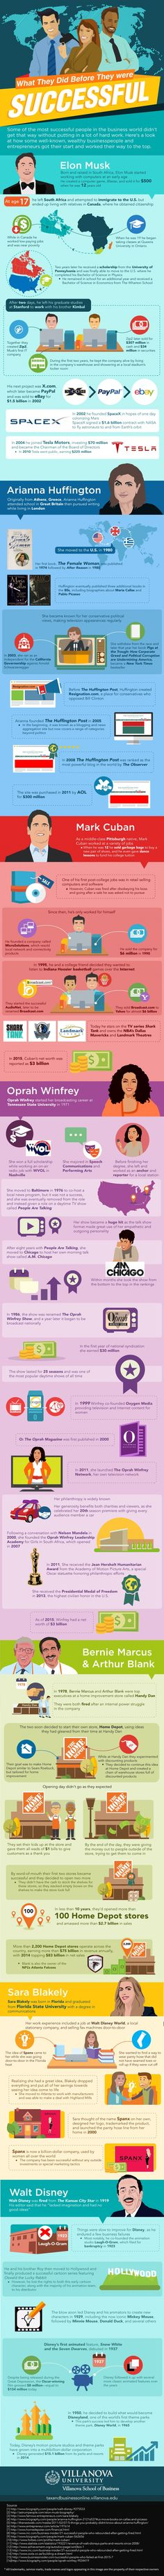 What They Did Before They Were Successful #Infographic #Business #Entrepreneur